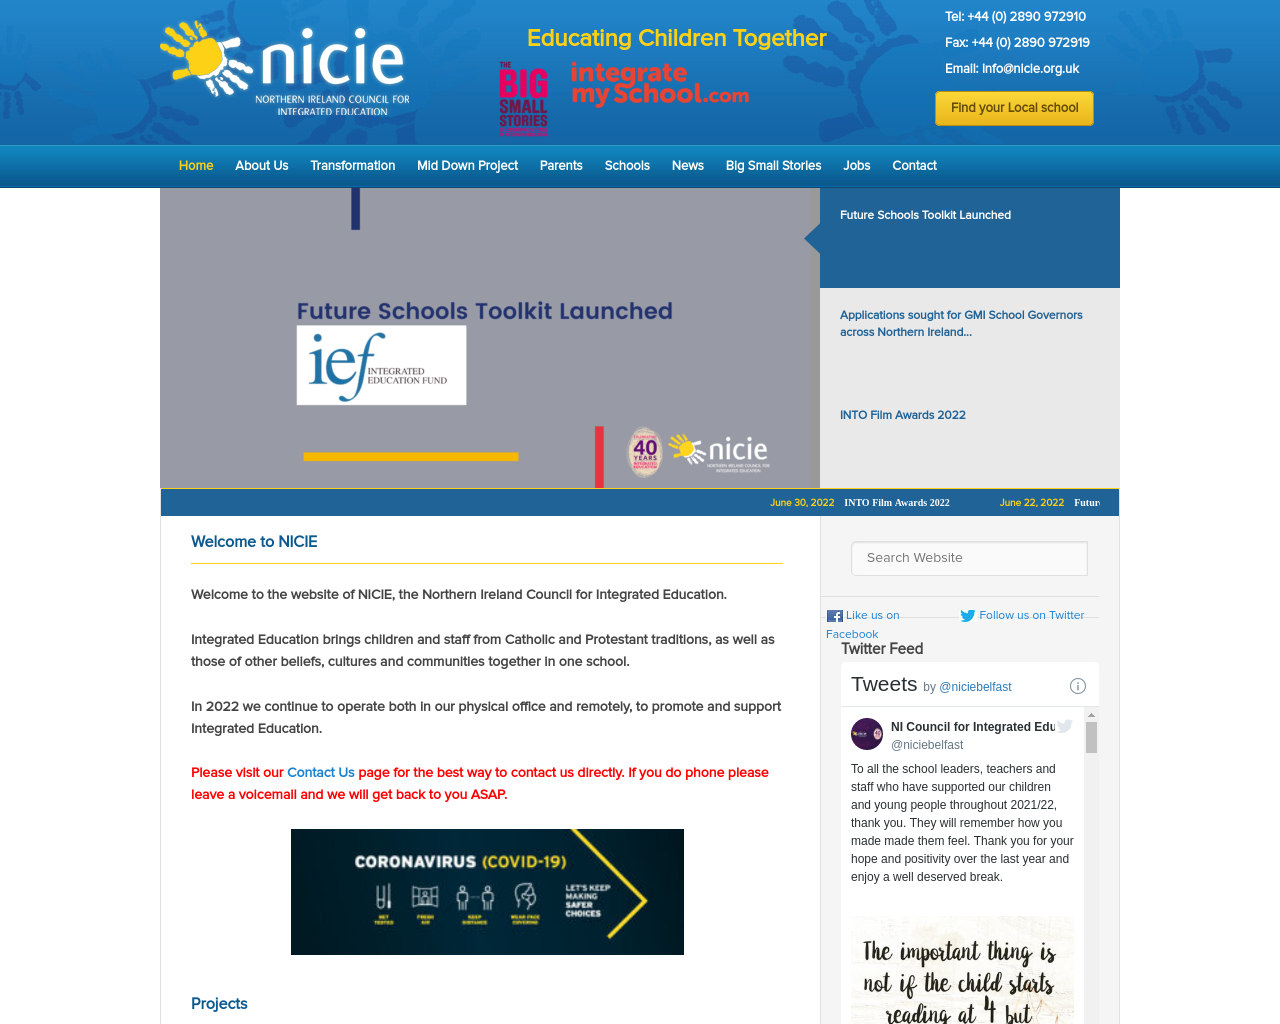 Northern Ireland Integrated Education